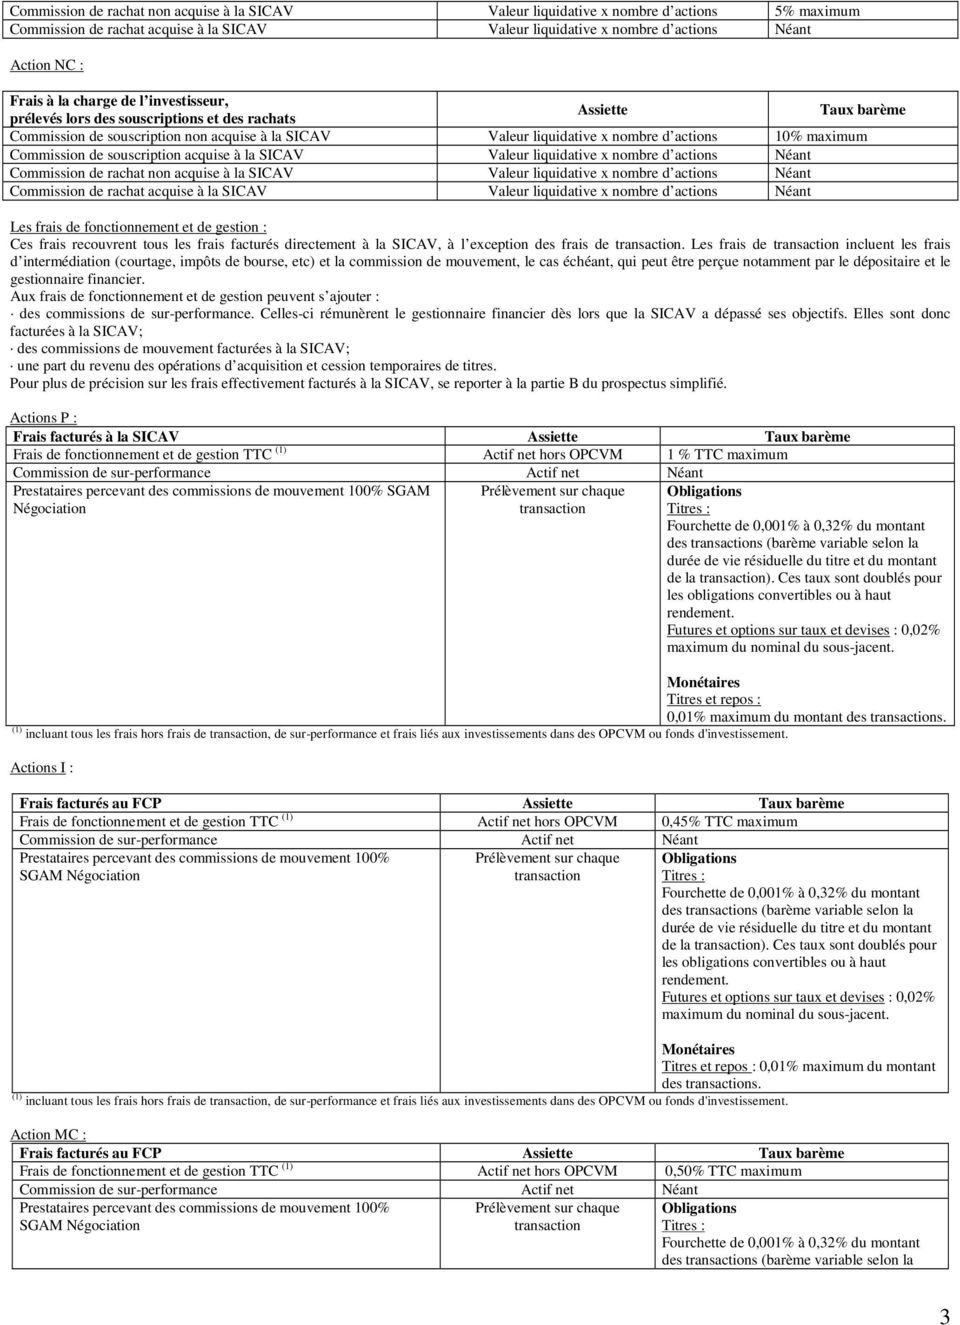 Commission de souscription acquise à la SICAV Valeur liquidative x nombre d actions Néant Commission de rachat non acquise à la SICAV Valeur liquidative x nombre d actions Néant Commission de rachat